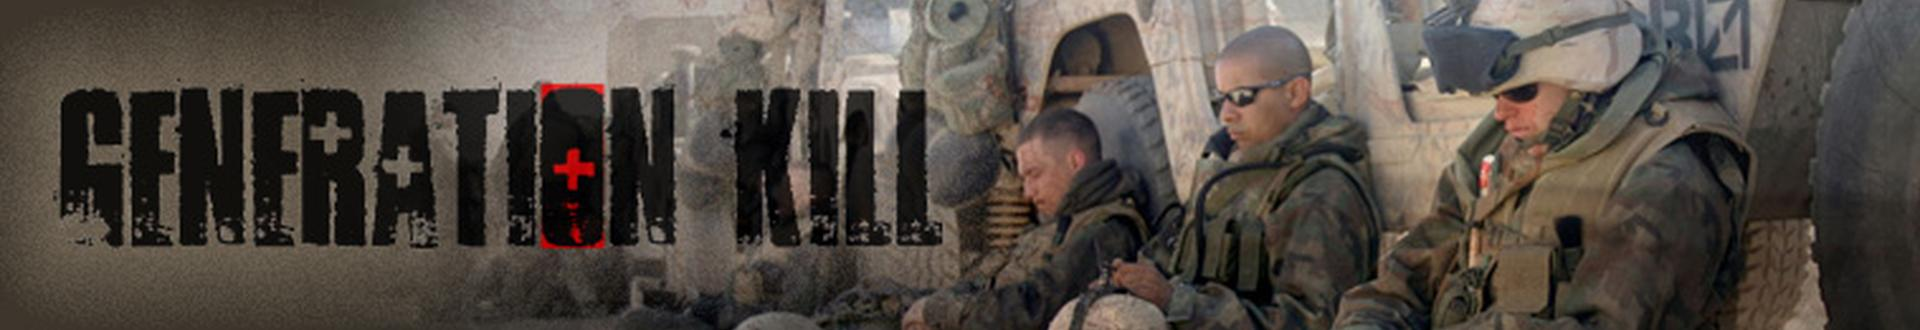 Image illustrative de Generation Kill